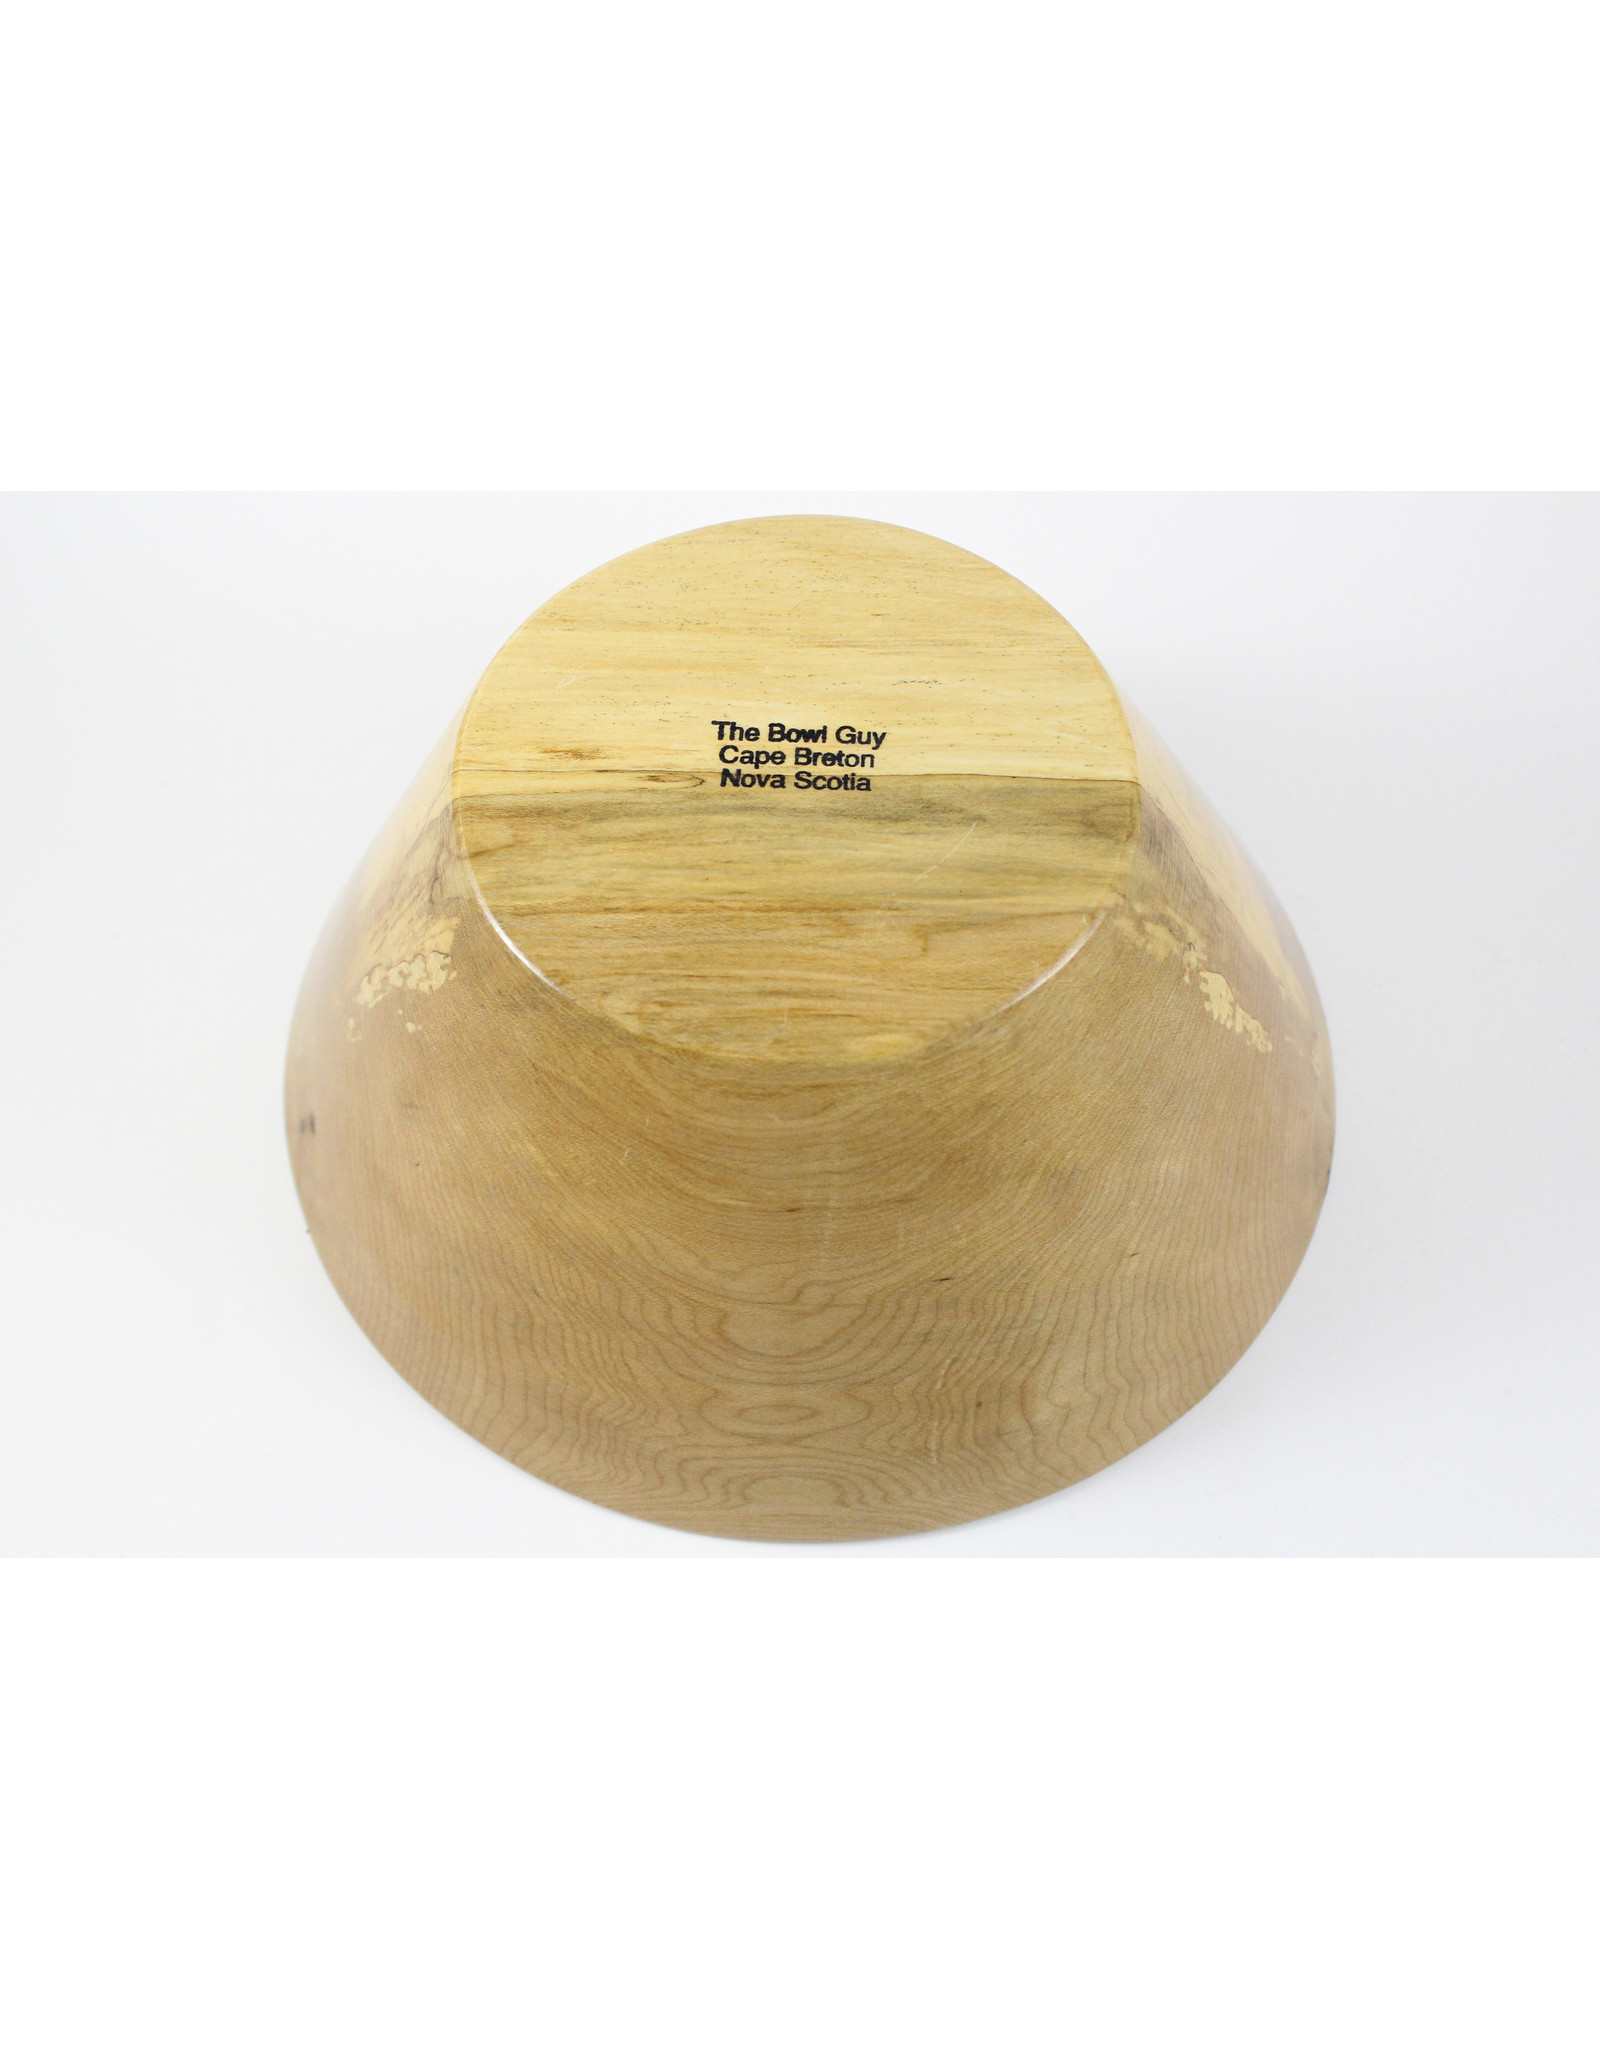 phil jones Assorted Wood Bowl by The Bowl Guy